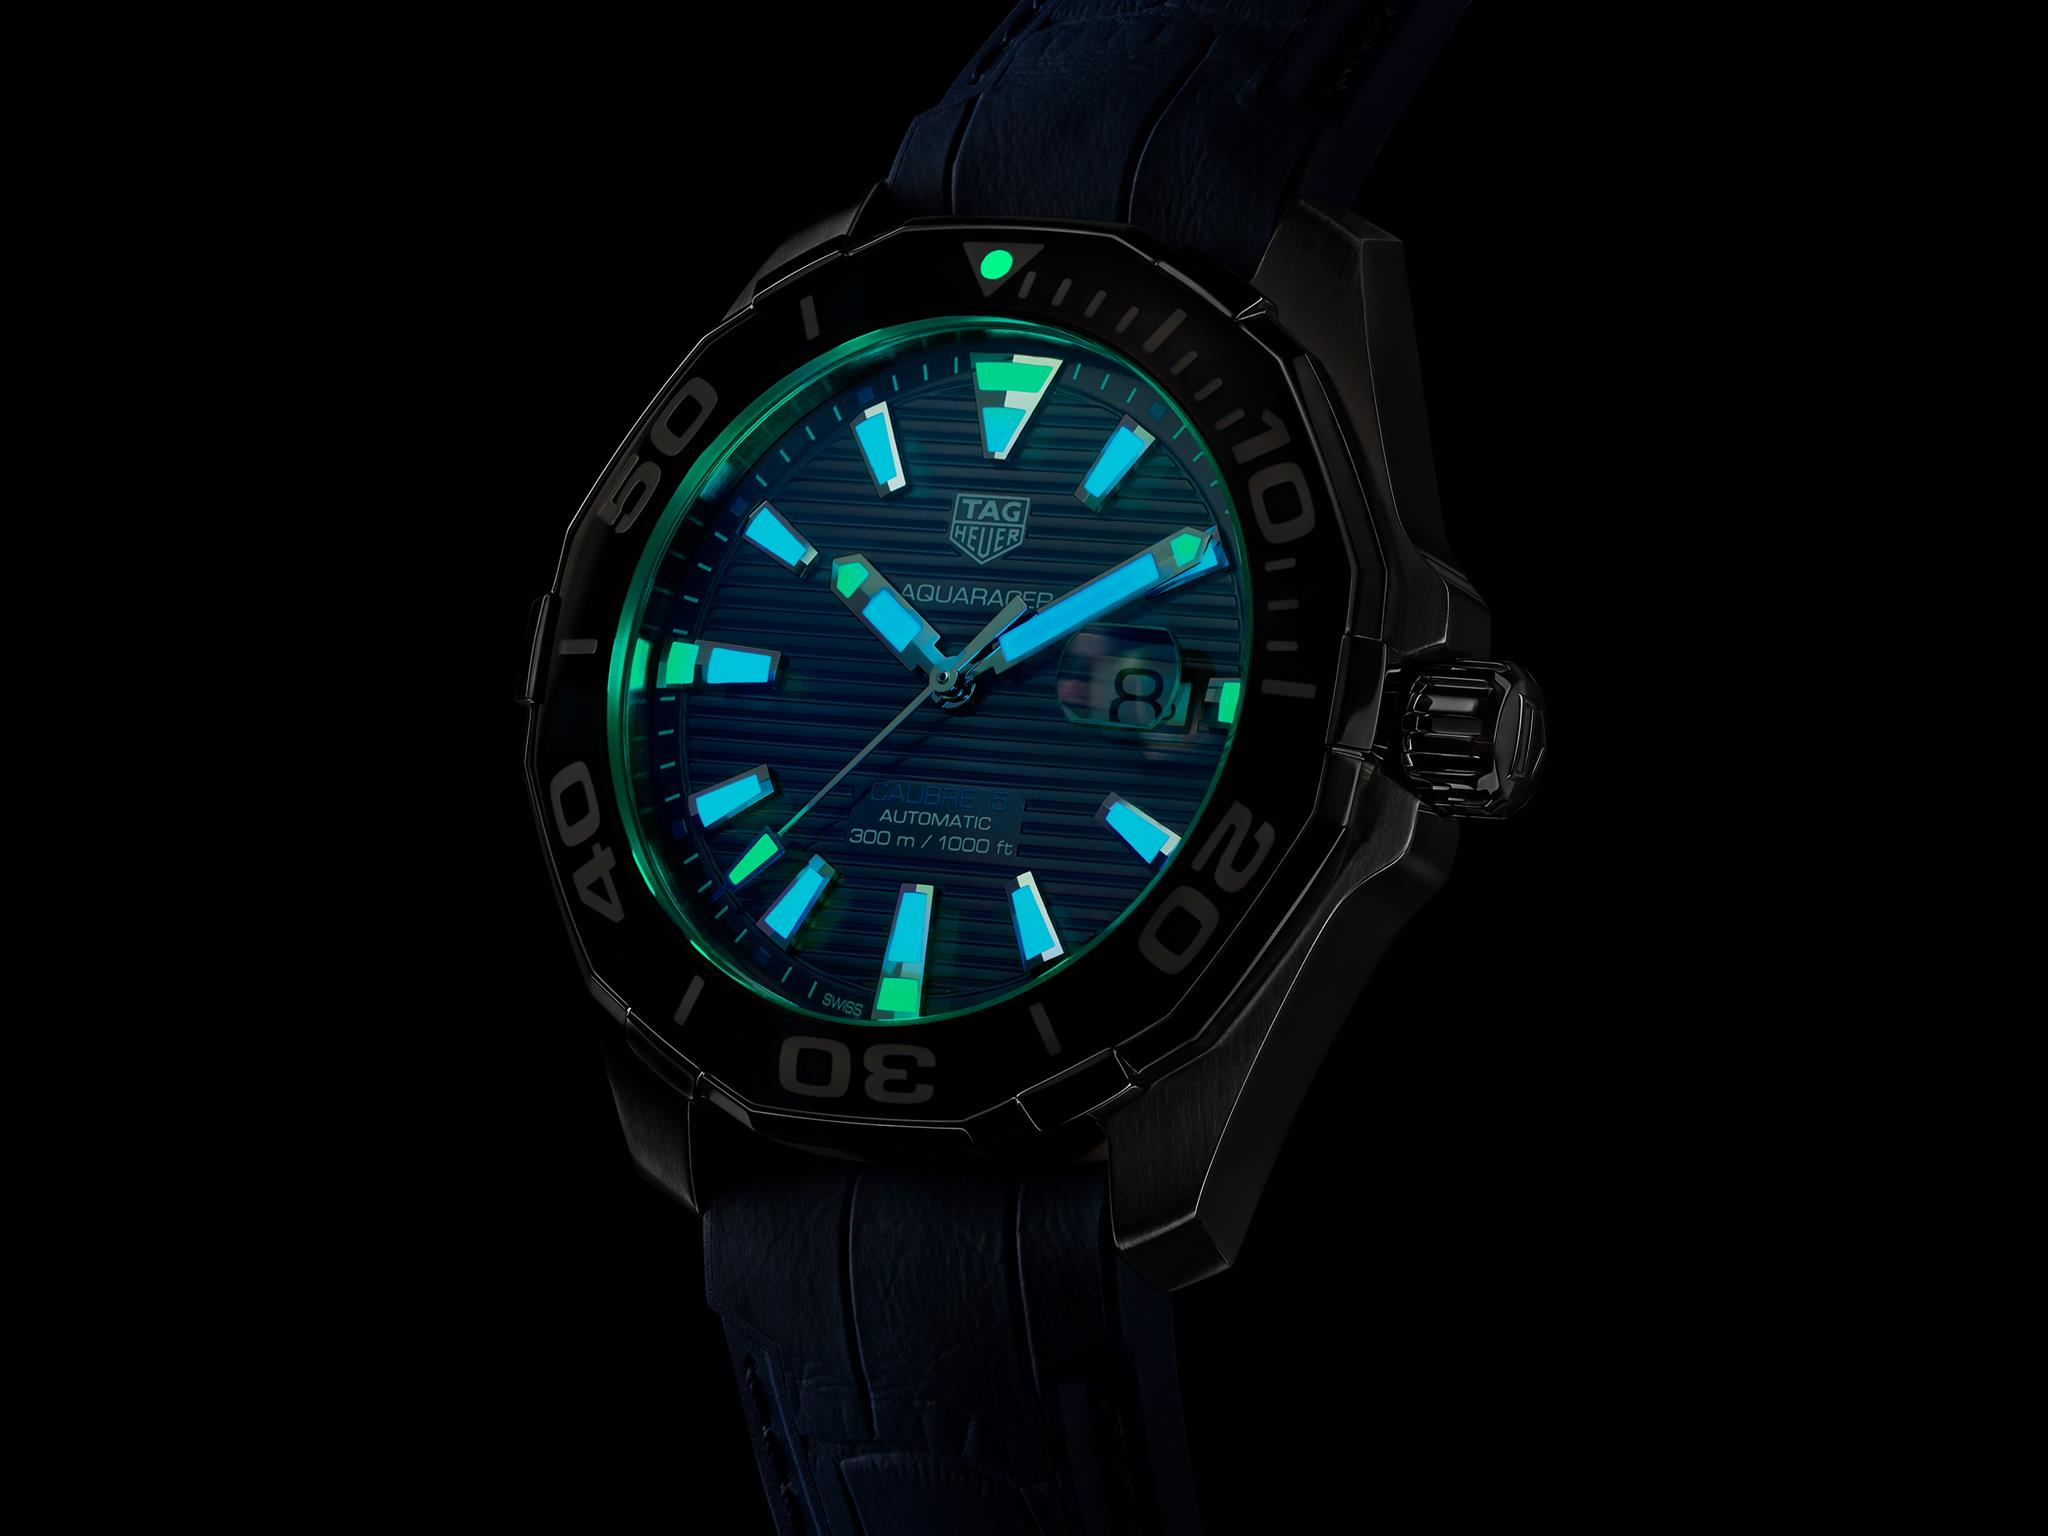 TAG Heuer Aquaracer 43 mm Tortoise Shell Effect Special Edition noche